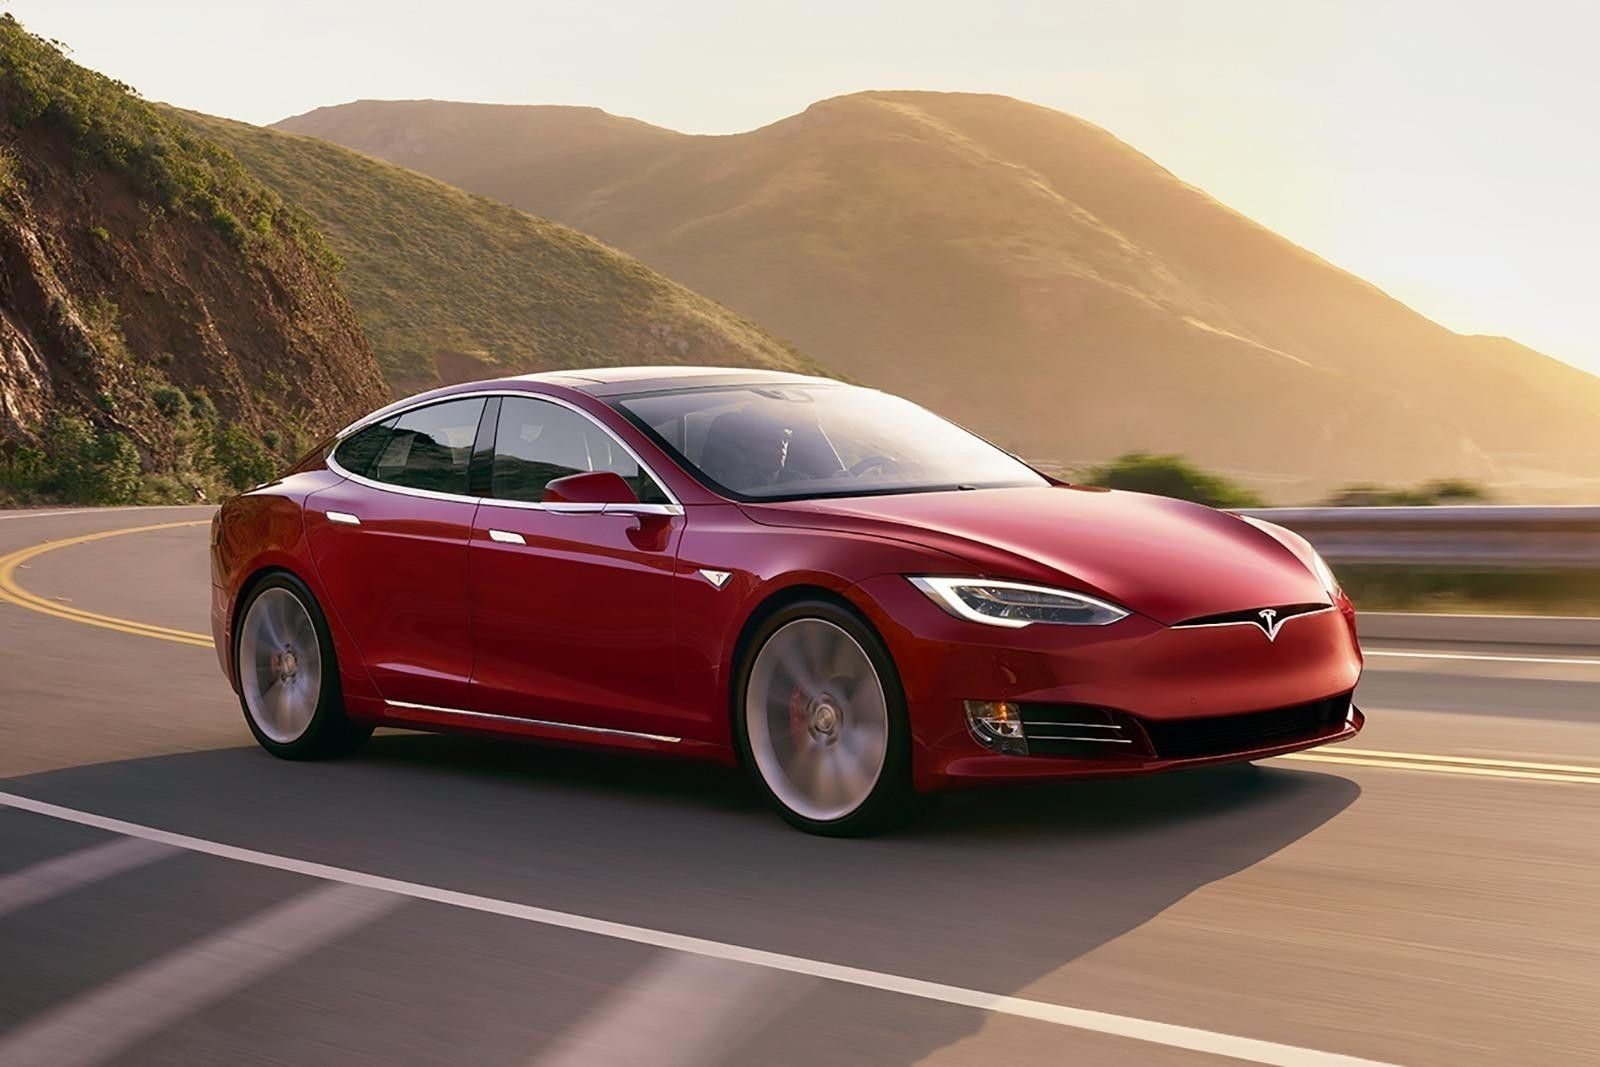 2018 Tesla Model S Release Date Price And Review Tesla Car Tesla Model S Tesla Electric Car